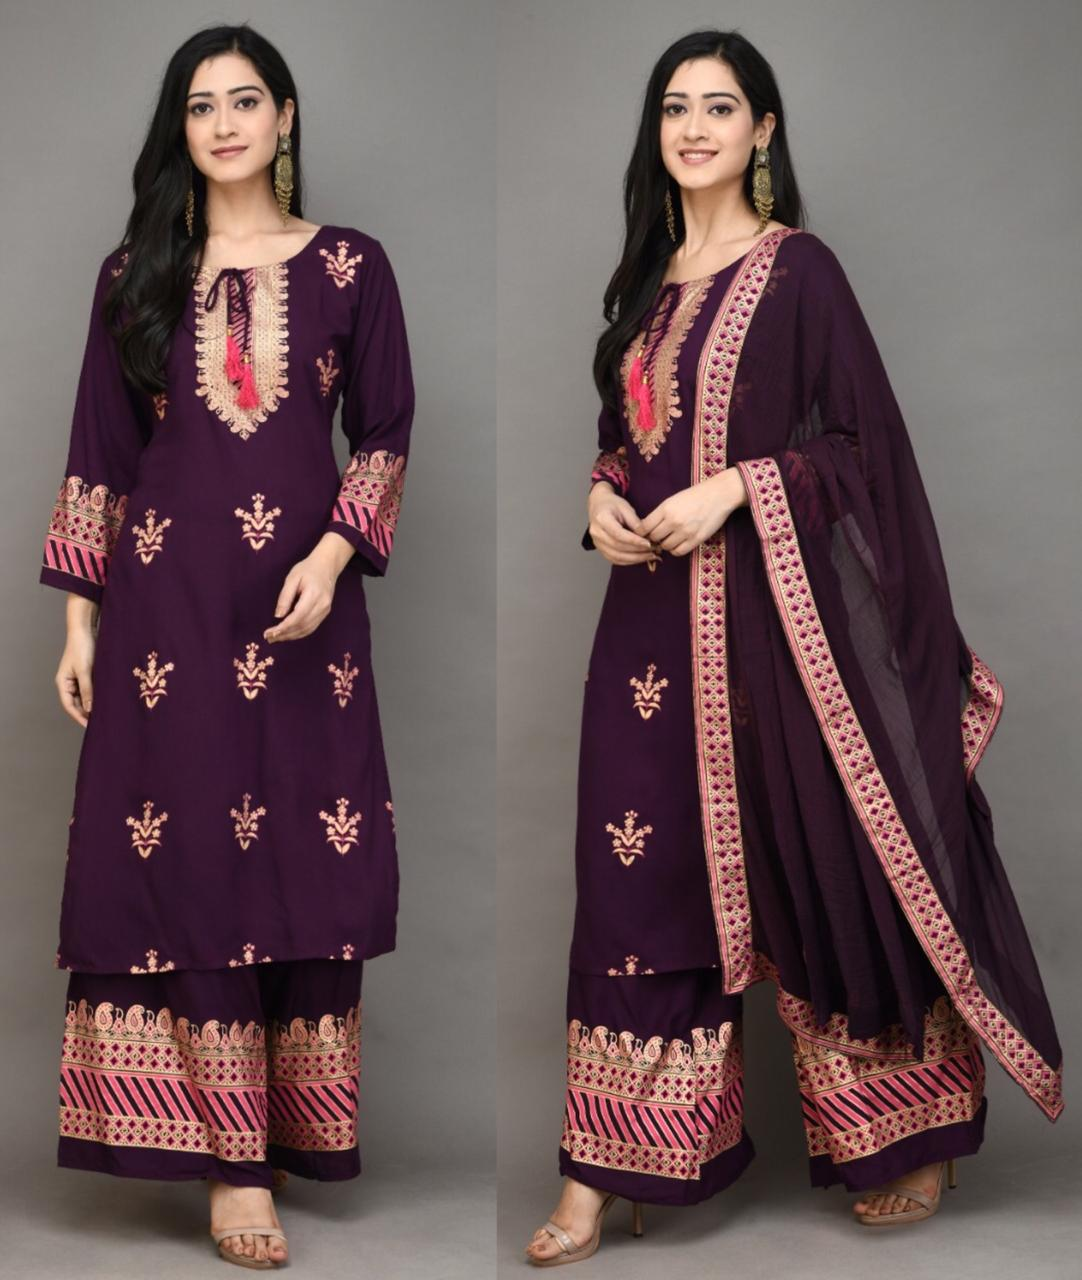 Purple kurti and Sharara with print and Tassles  Chiffon Dupatta